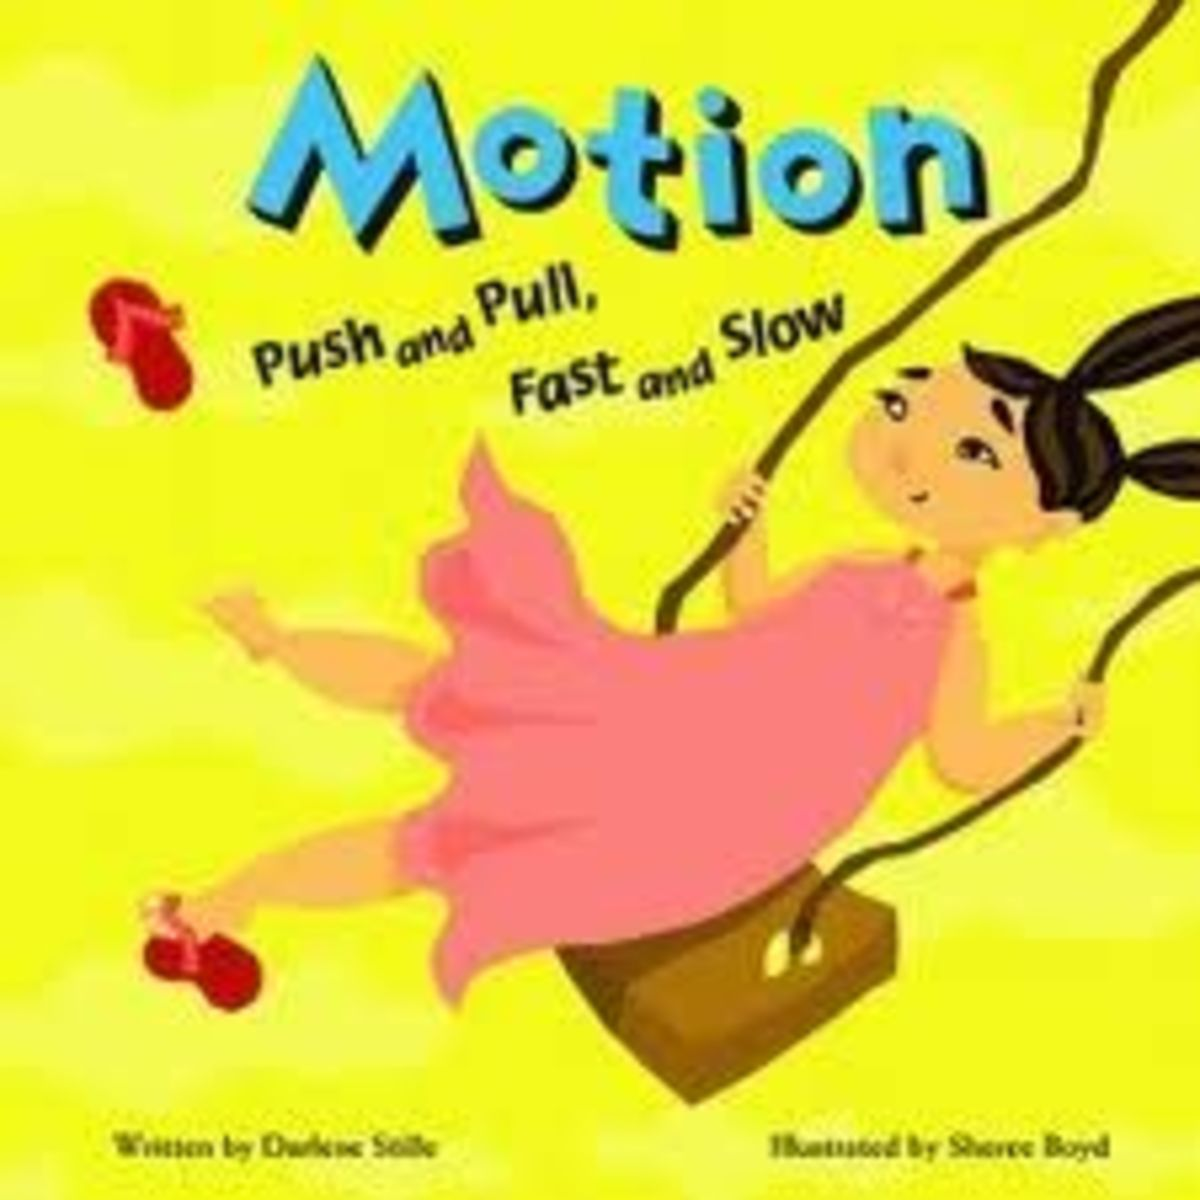 Lessons in motion are considered difficult topics since these require deep analysis and careful computation. Interesting tools and strategies are needed to help students learn the lessons without apprehension.